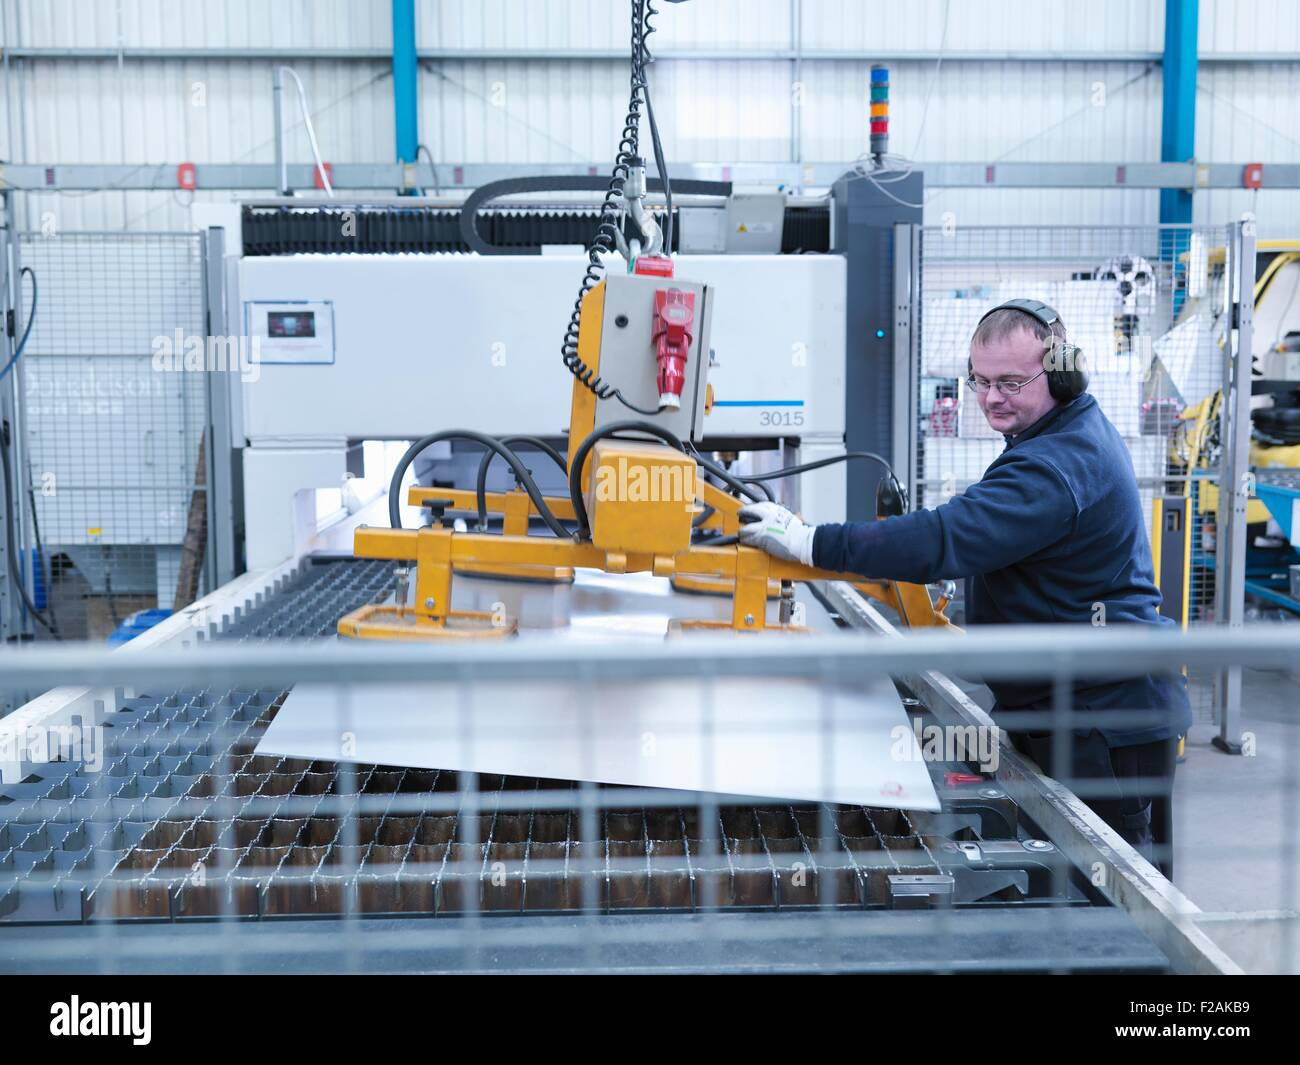 Engineer loading sheet metal into laser cutter in engineering factory - Stock Image